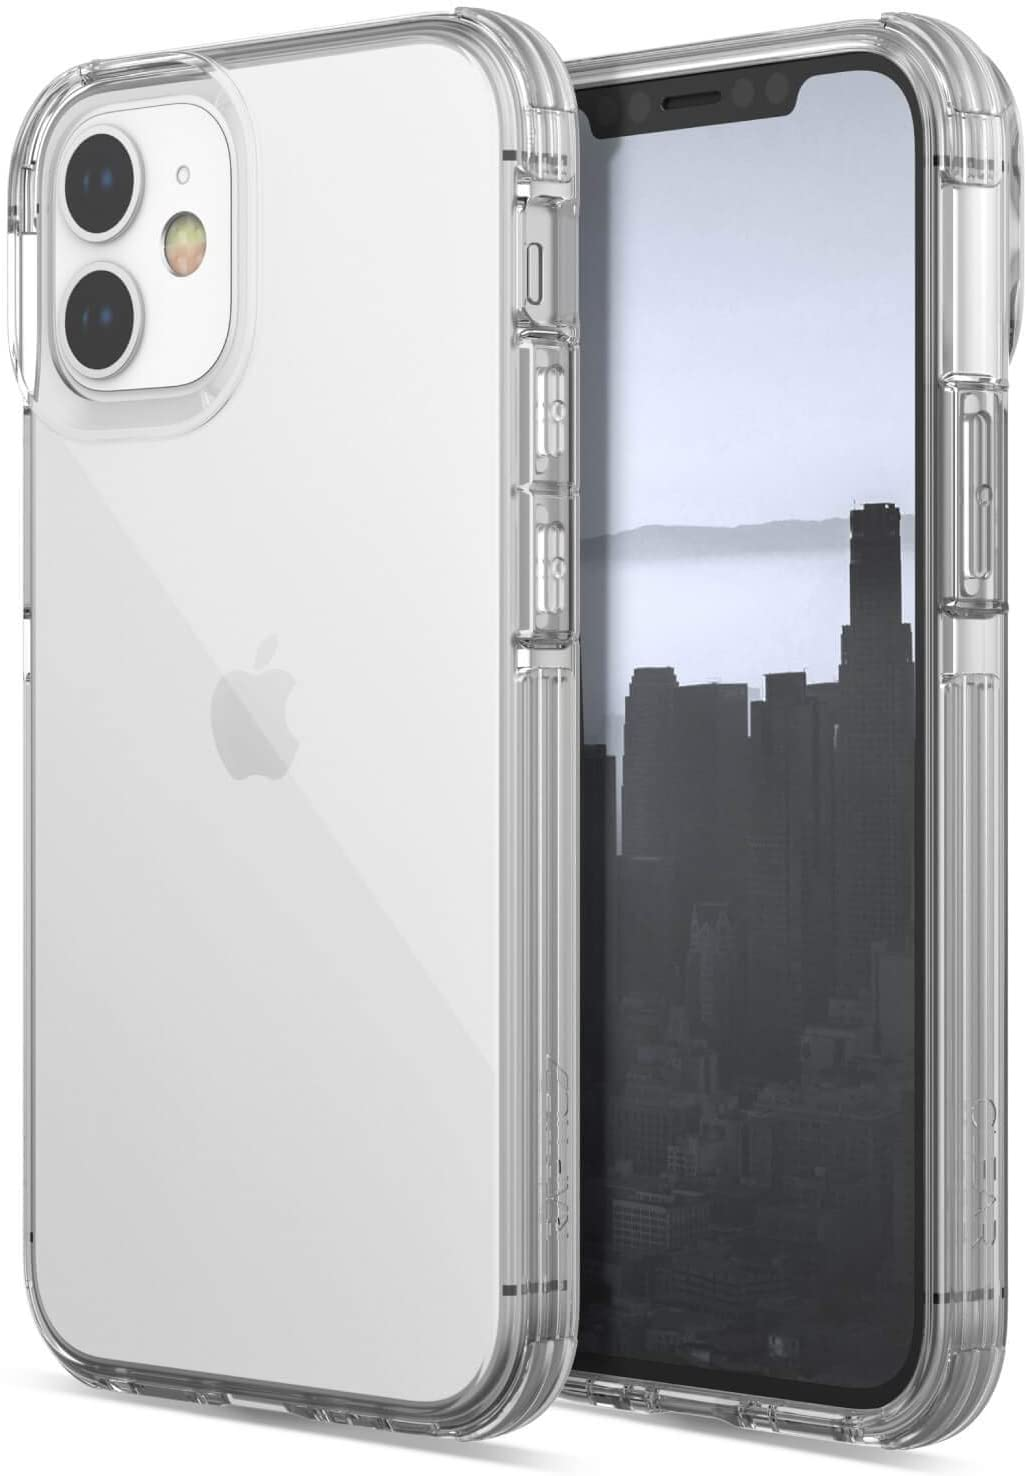 Raptic Clear, iPhone 12 Pro Max Case - Military Grade Drop Tested, Anodized Aluminum, TPU, and Polycarbonate Protective Case for Apple iPhone 12 Pro Max, Clear